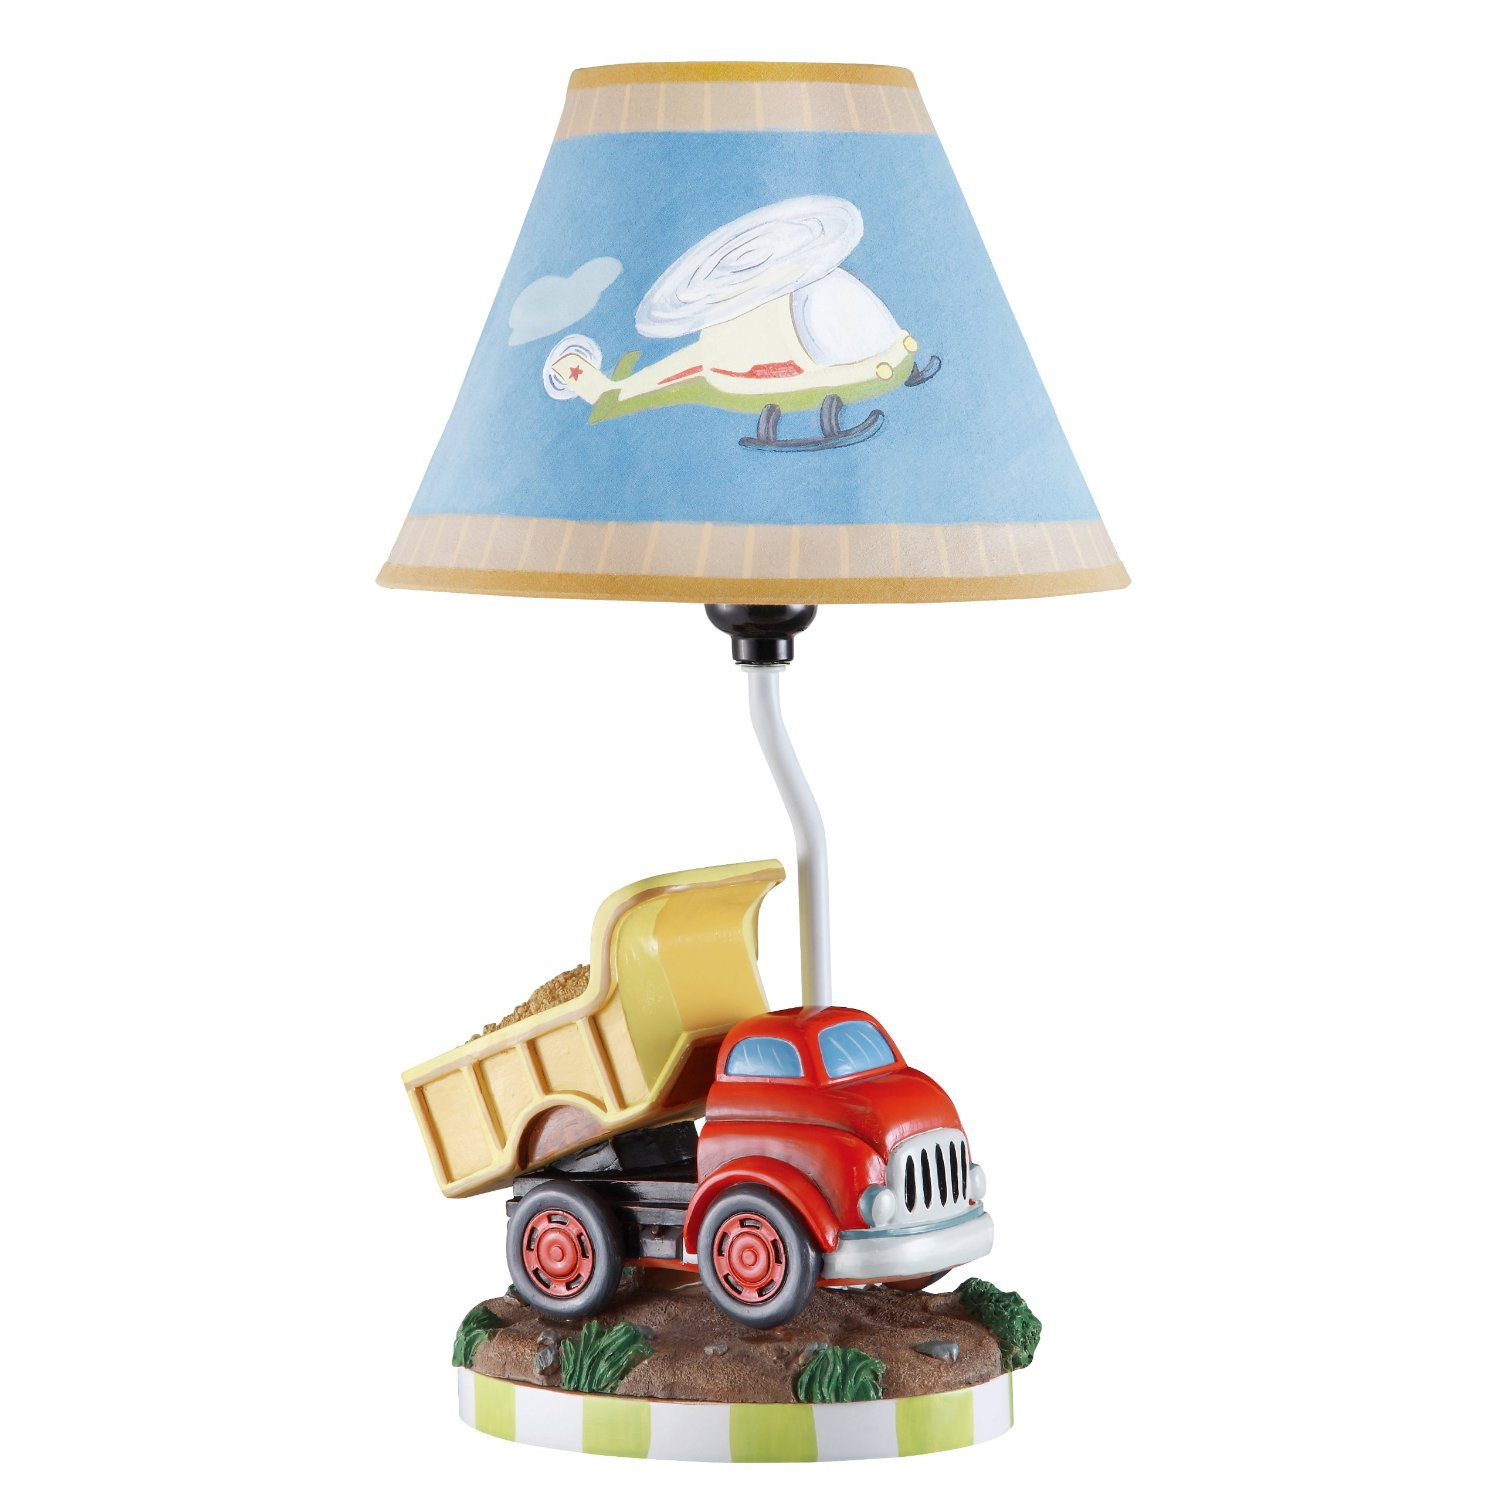 Cute lamps for kids rooms lighting interior decorating idea for Lighting for kids room